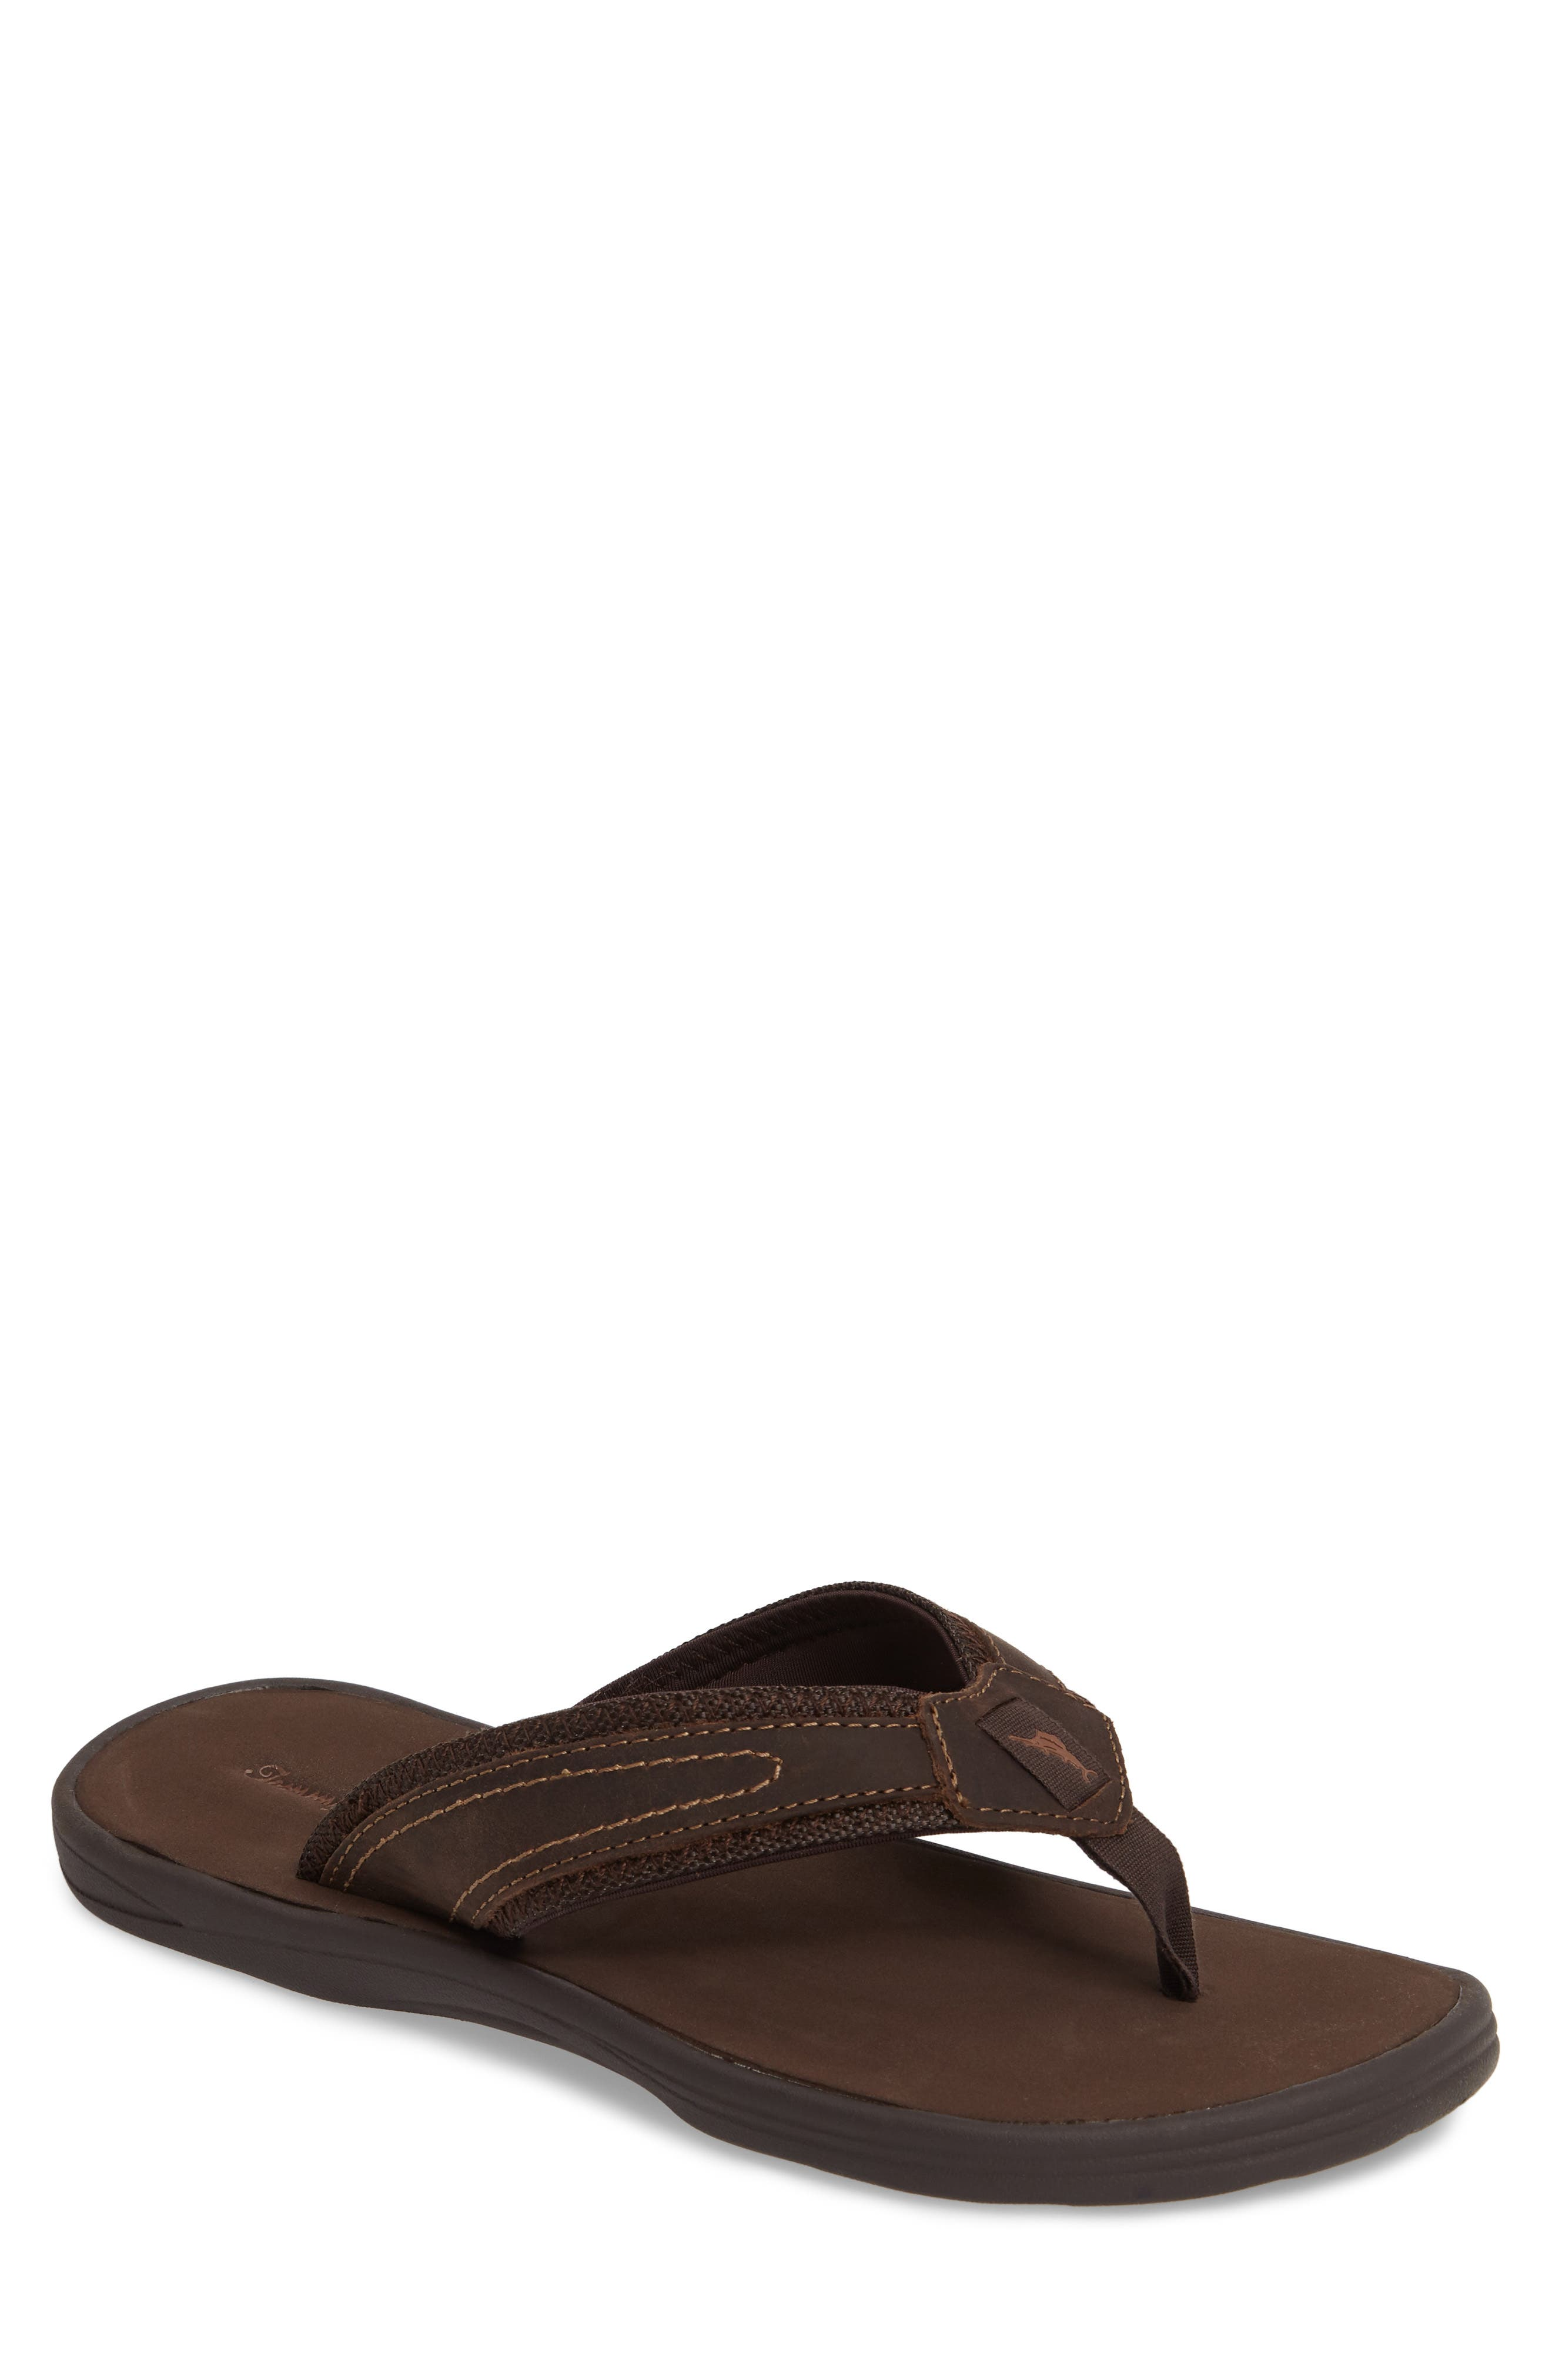 Seawell Flip Flop,                             Main thumbnail 1, color,                             Dark Brown Leather